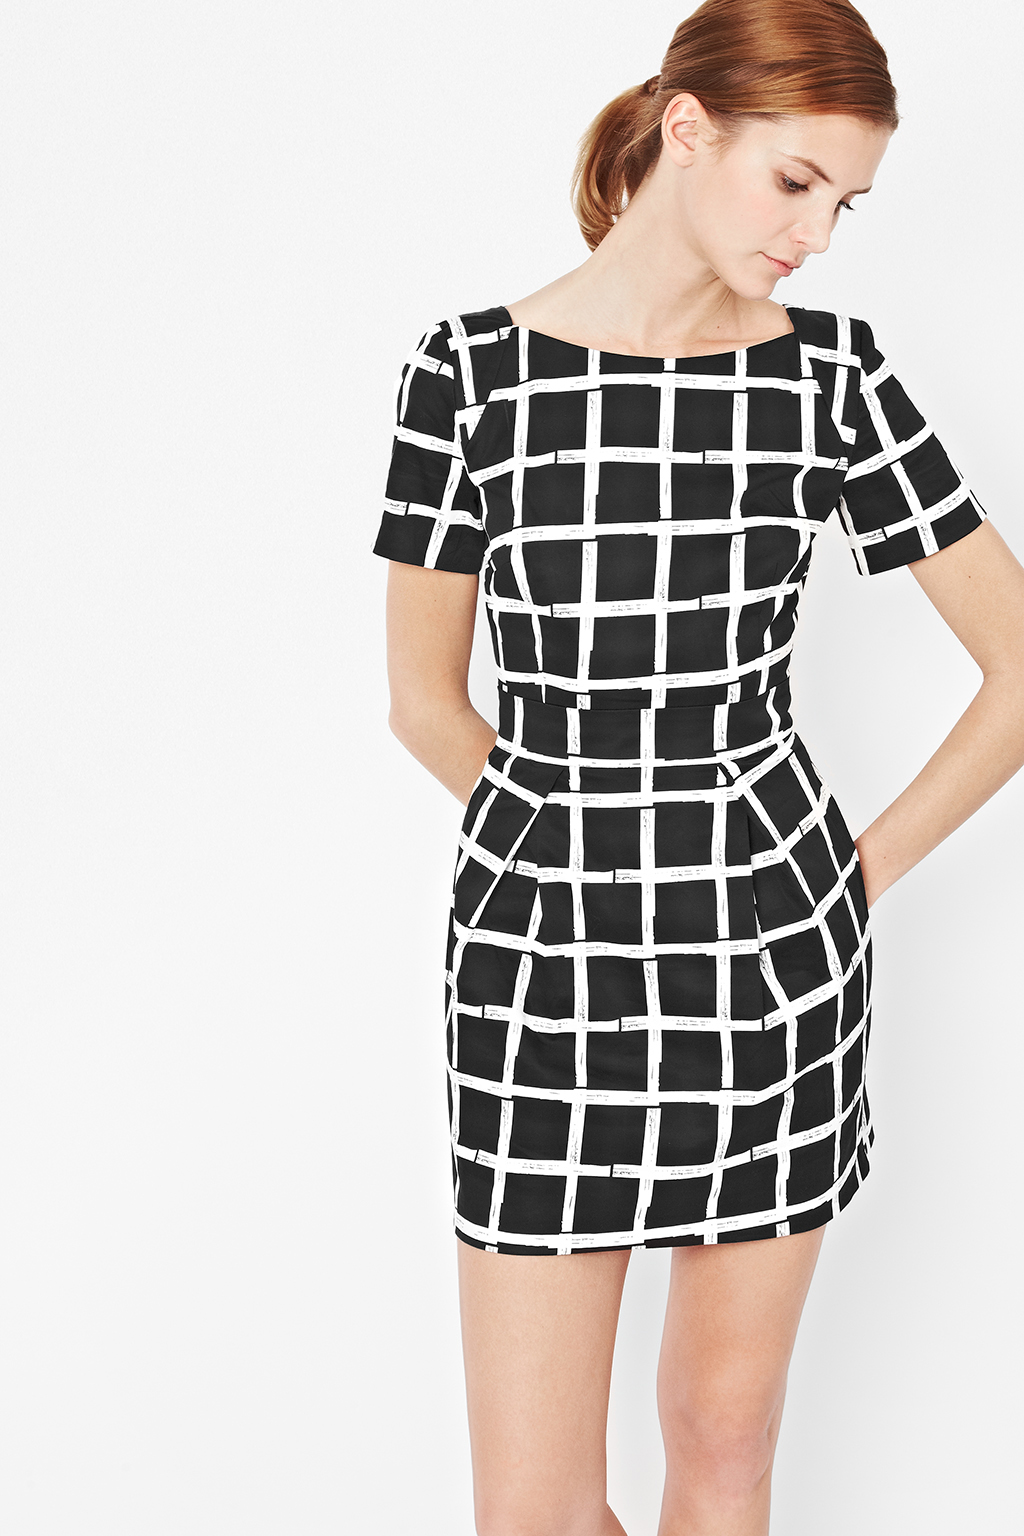 Lyst french connection paintcheck richie dress in black for French connection shirt dress